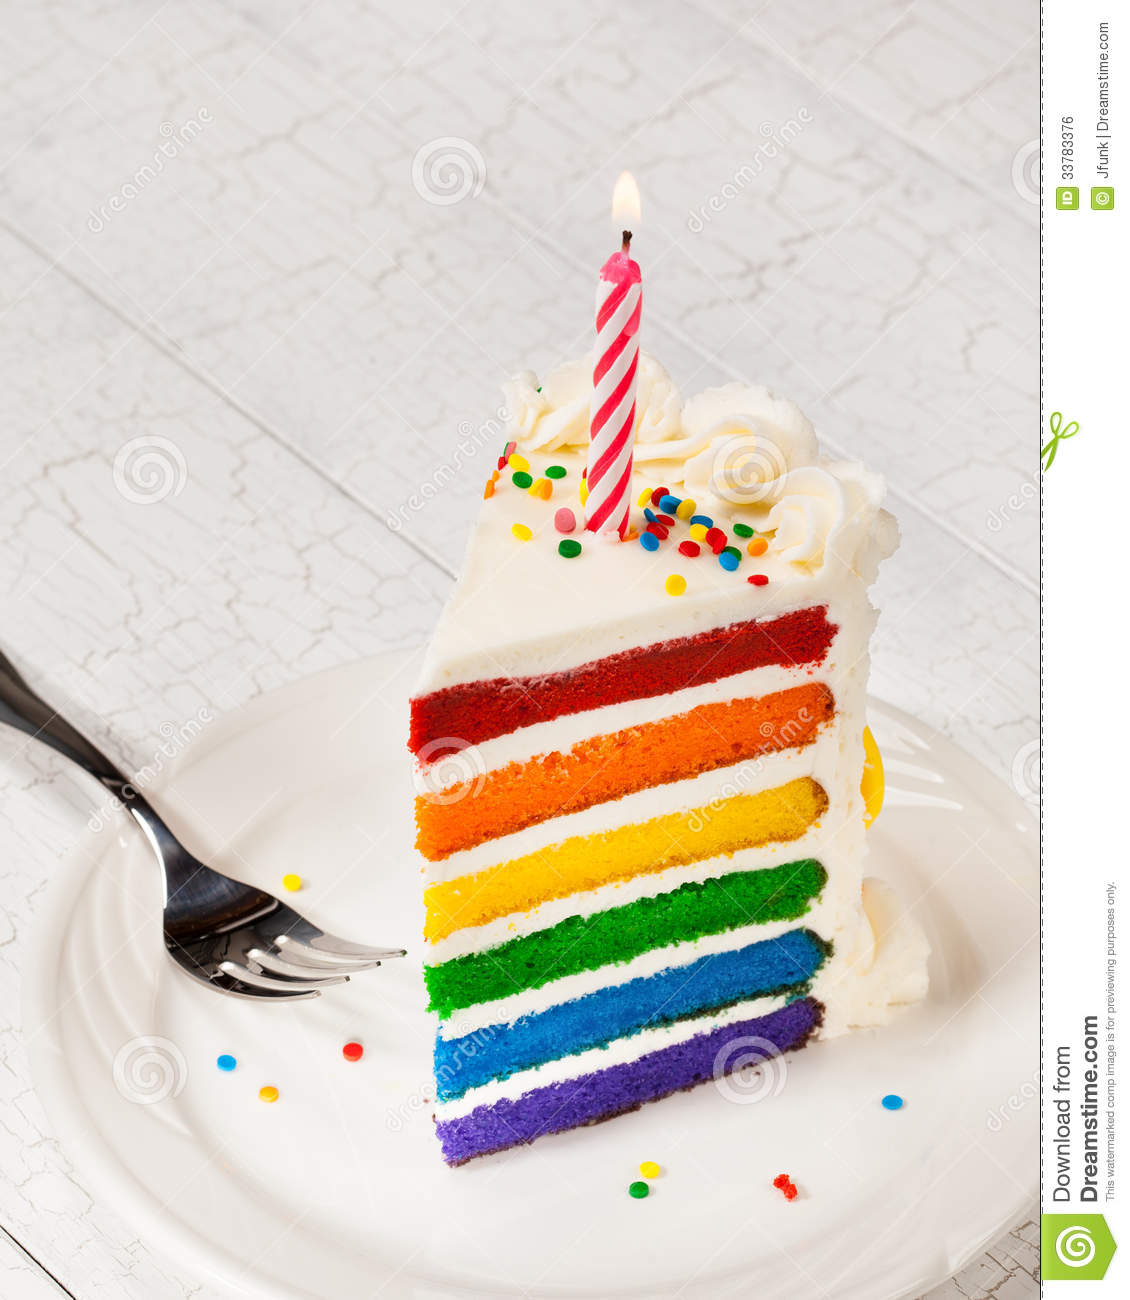 Birthday Cake Slice Clipart - Clipart Suggest